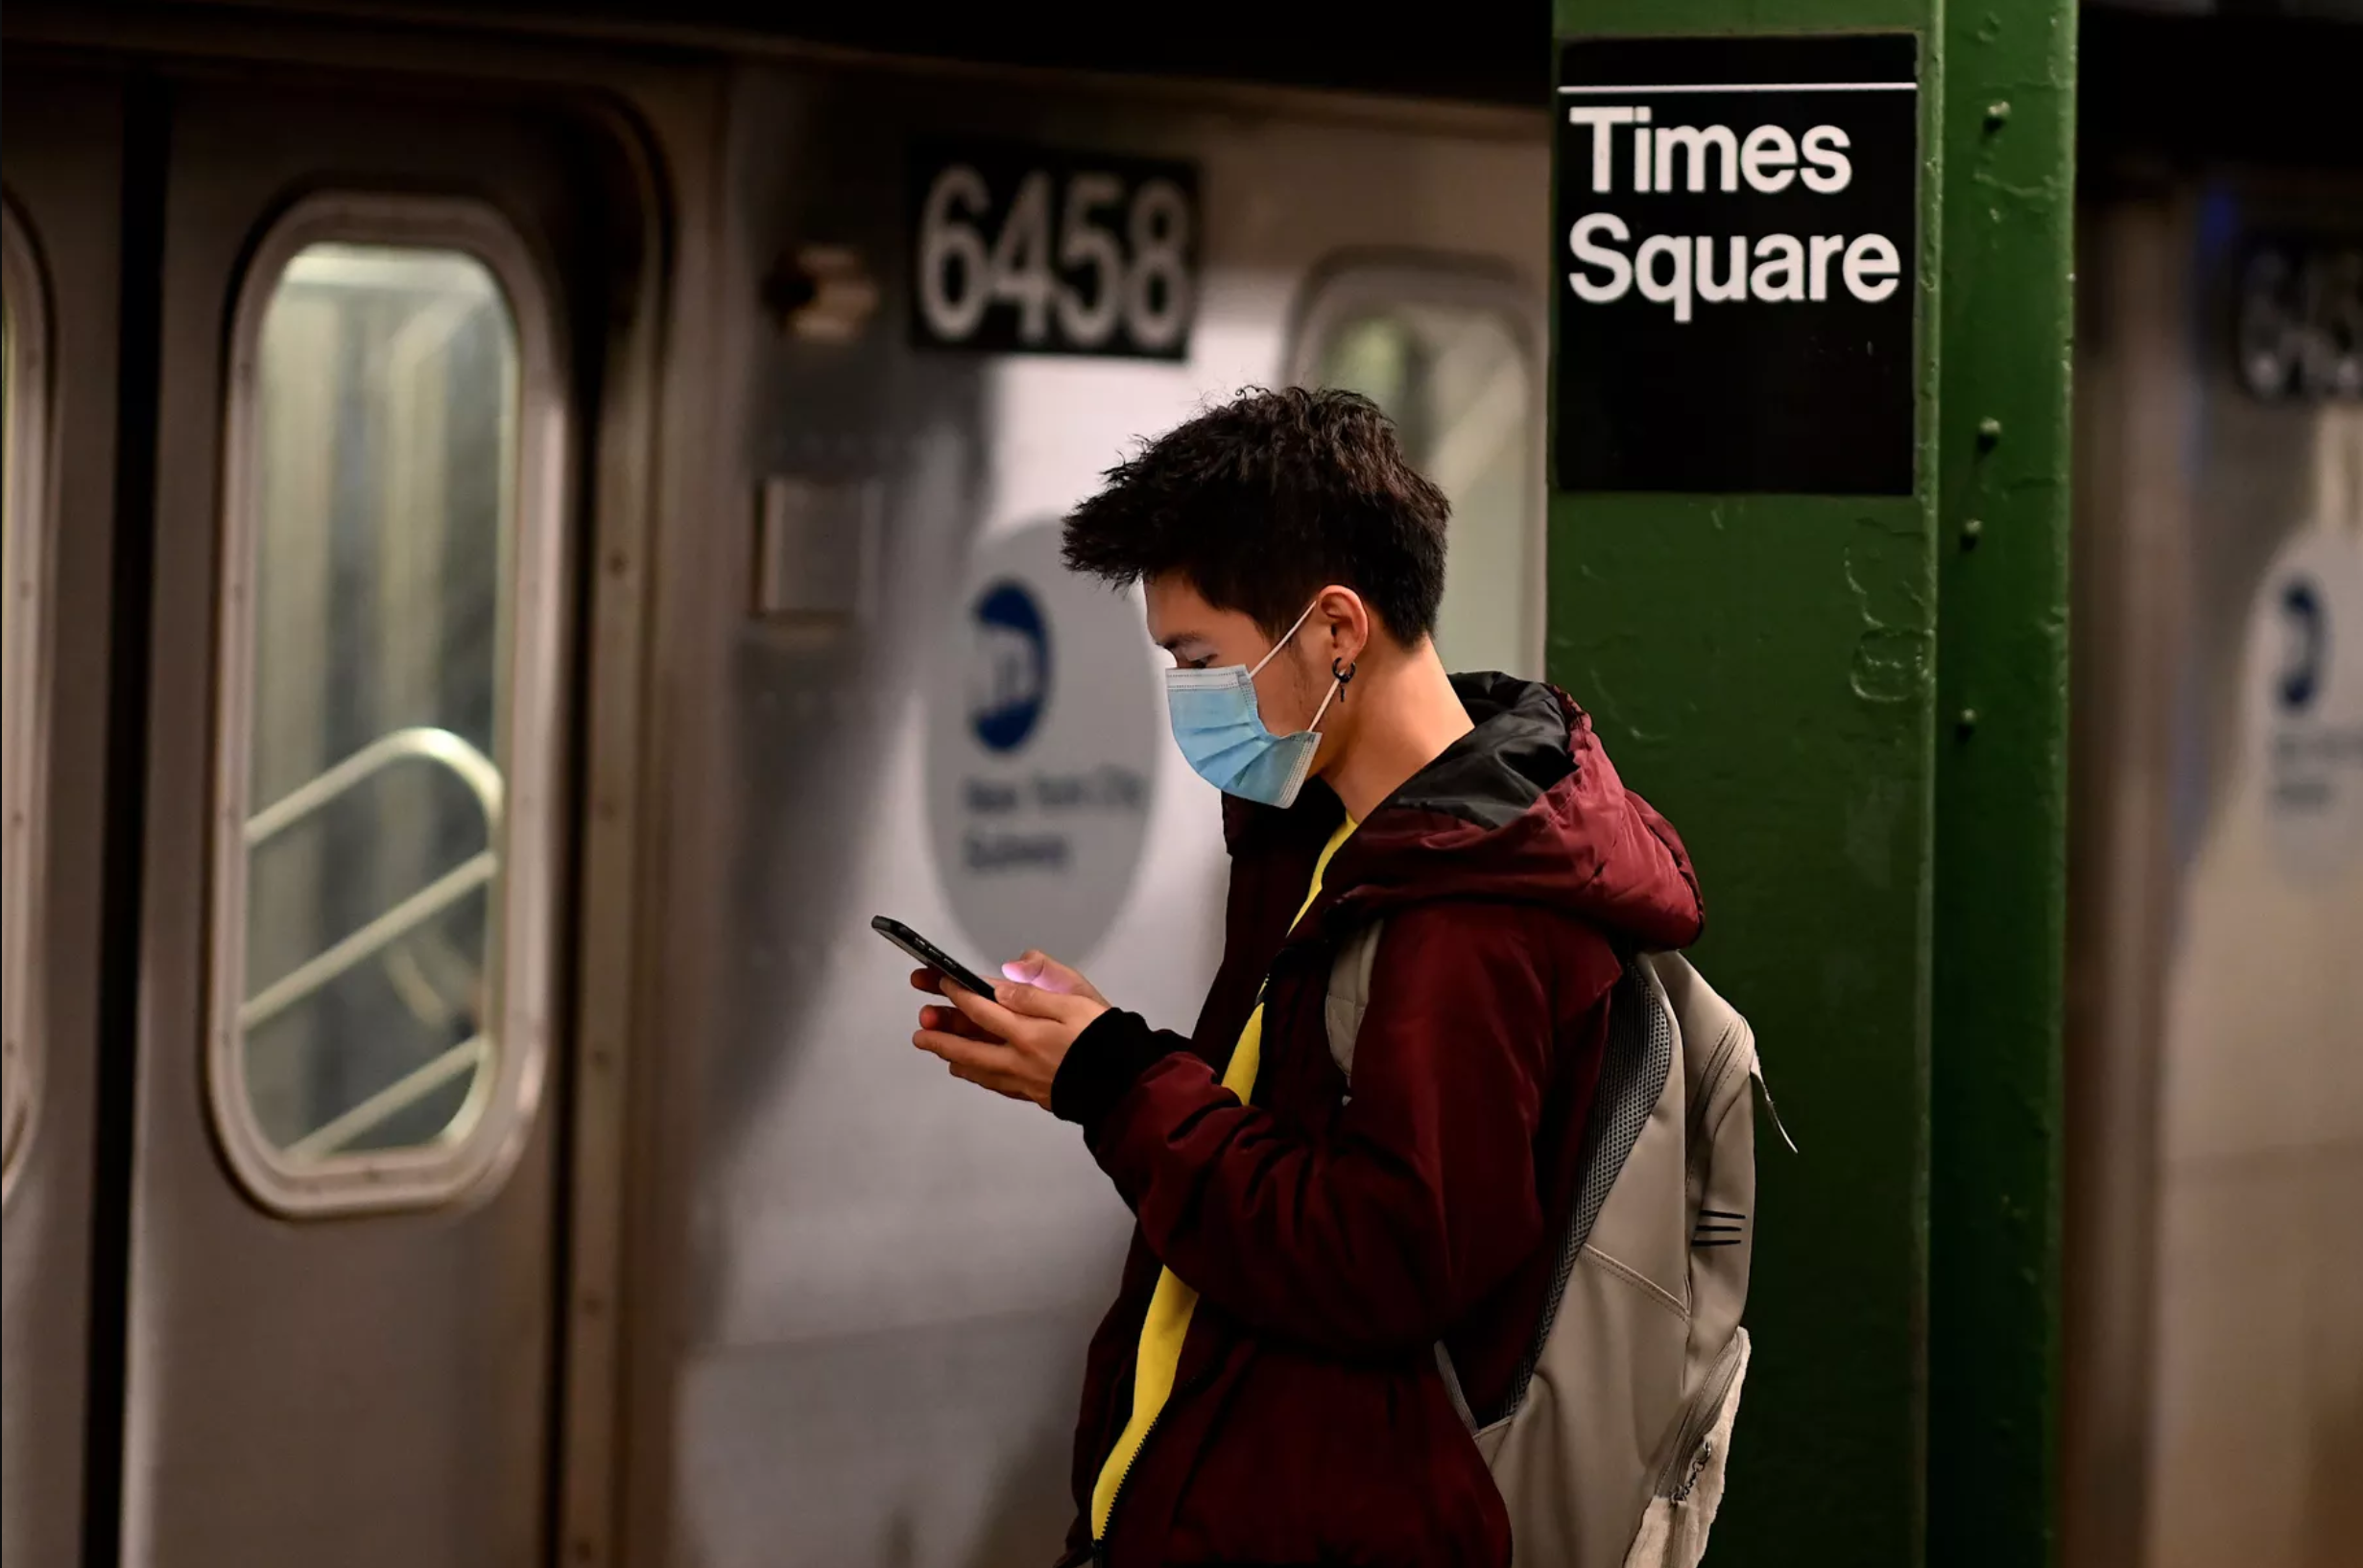 A man wearing a face mask looks at his phone in the New York metro during the coronavirus outbreak.